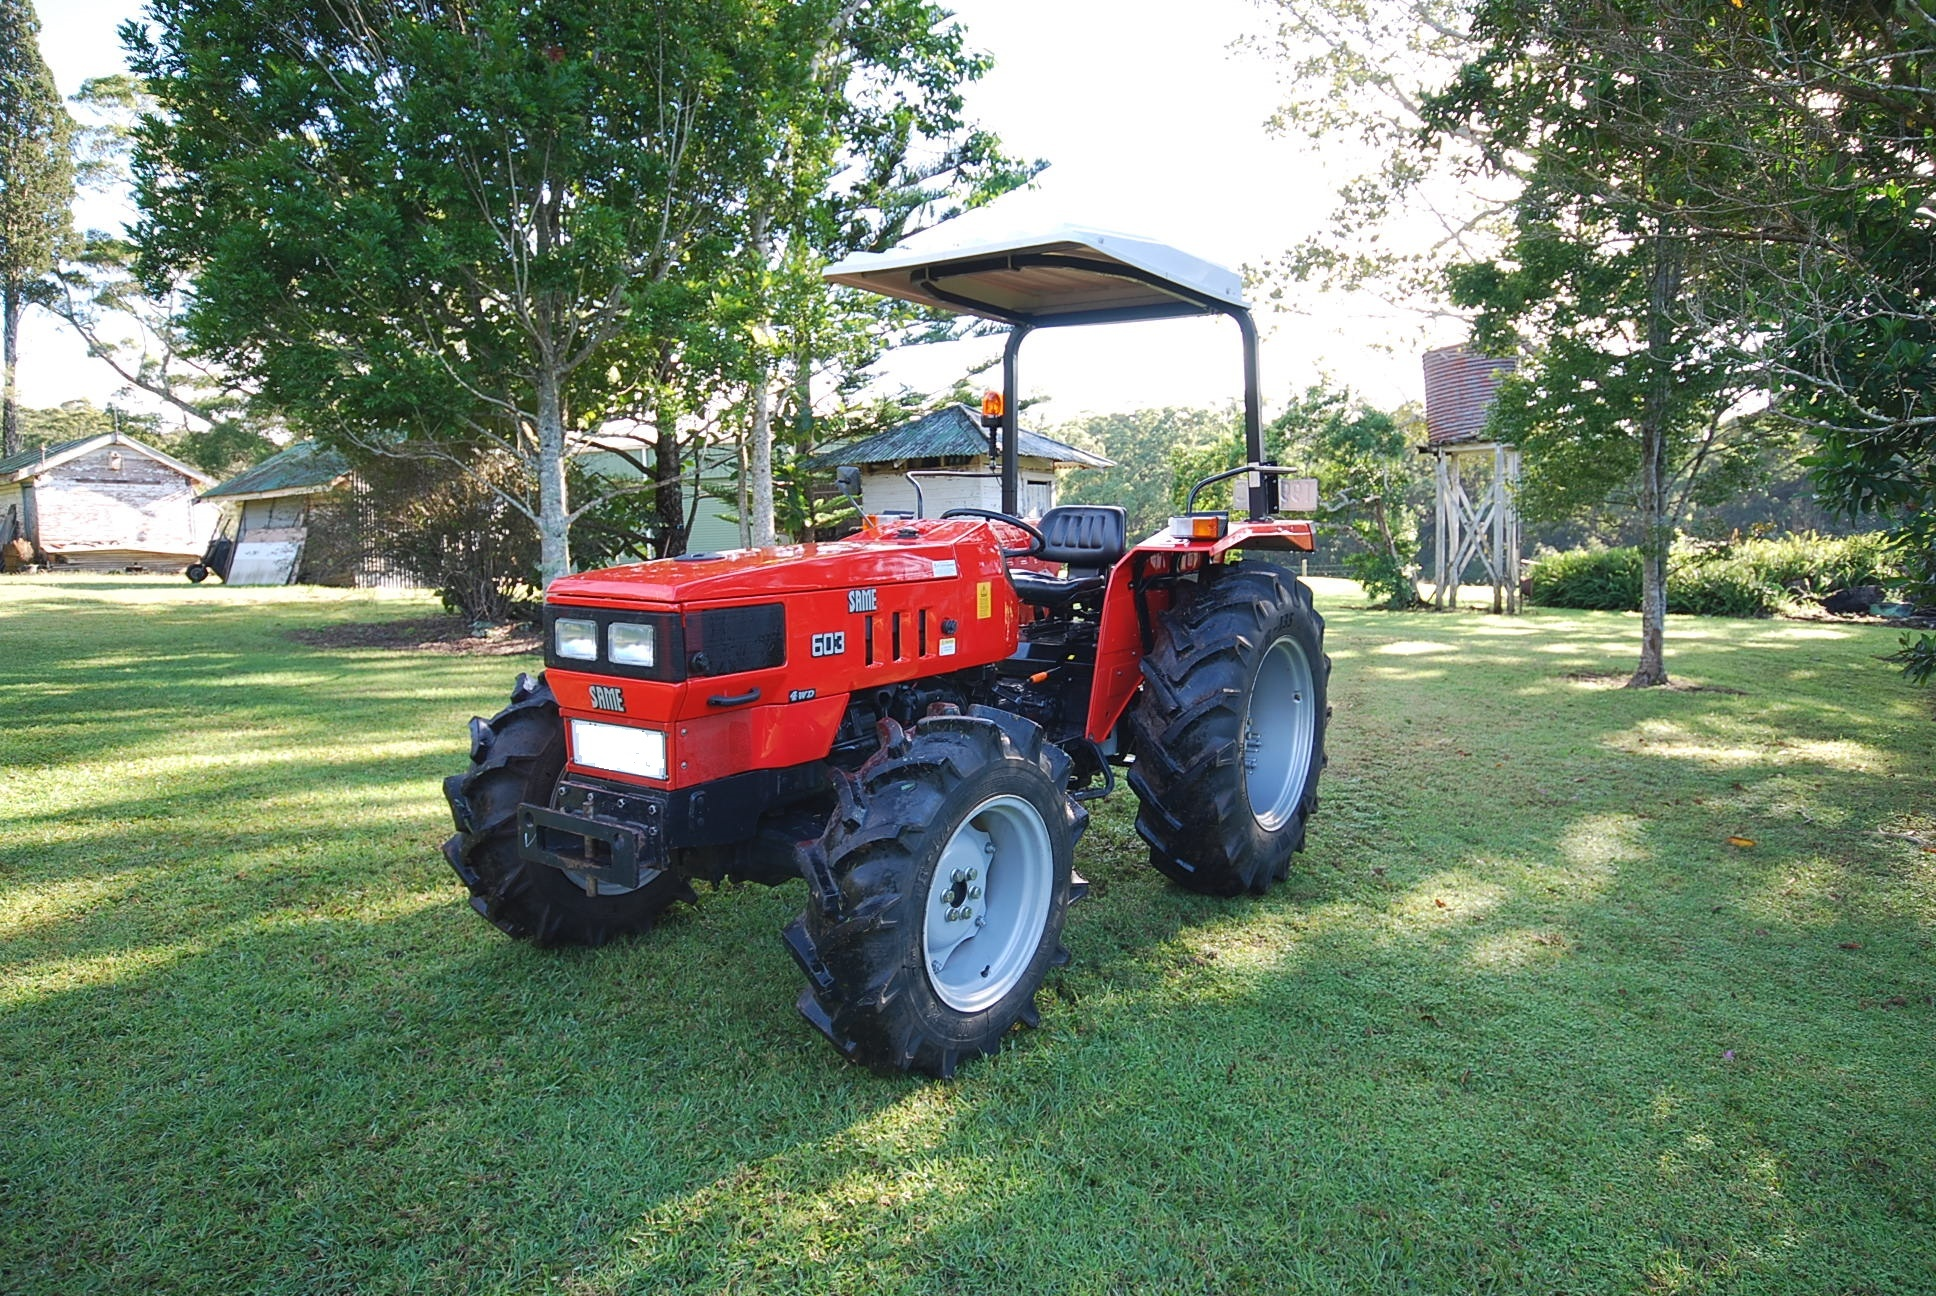 SAME Commando tractor 520 hrs 4WD Excellent Cond. $17,900 Ph: 0419 28 8891